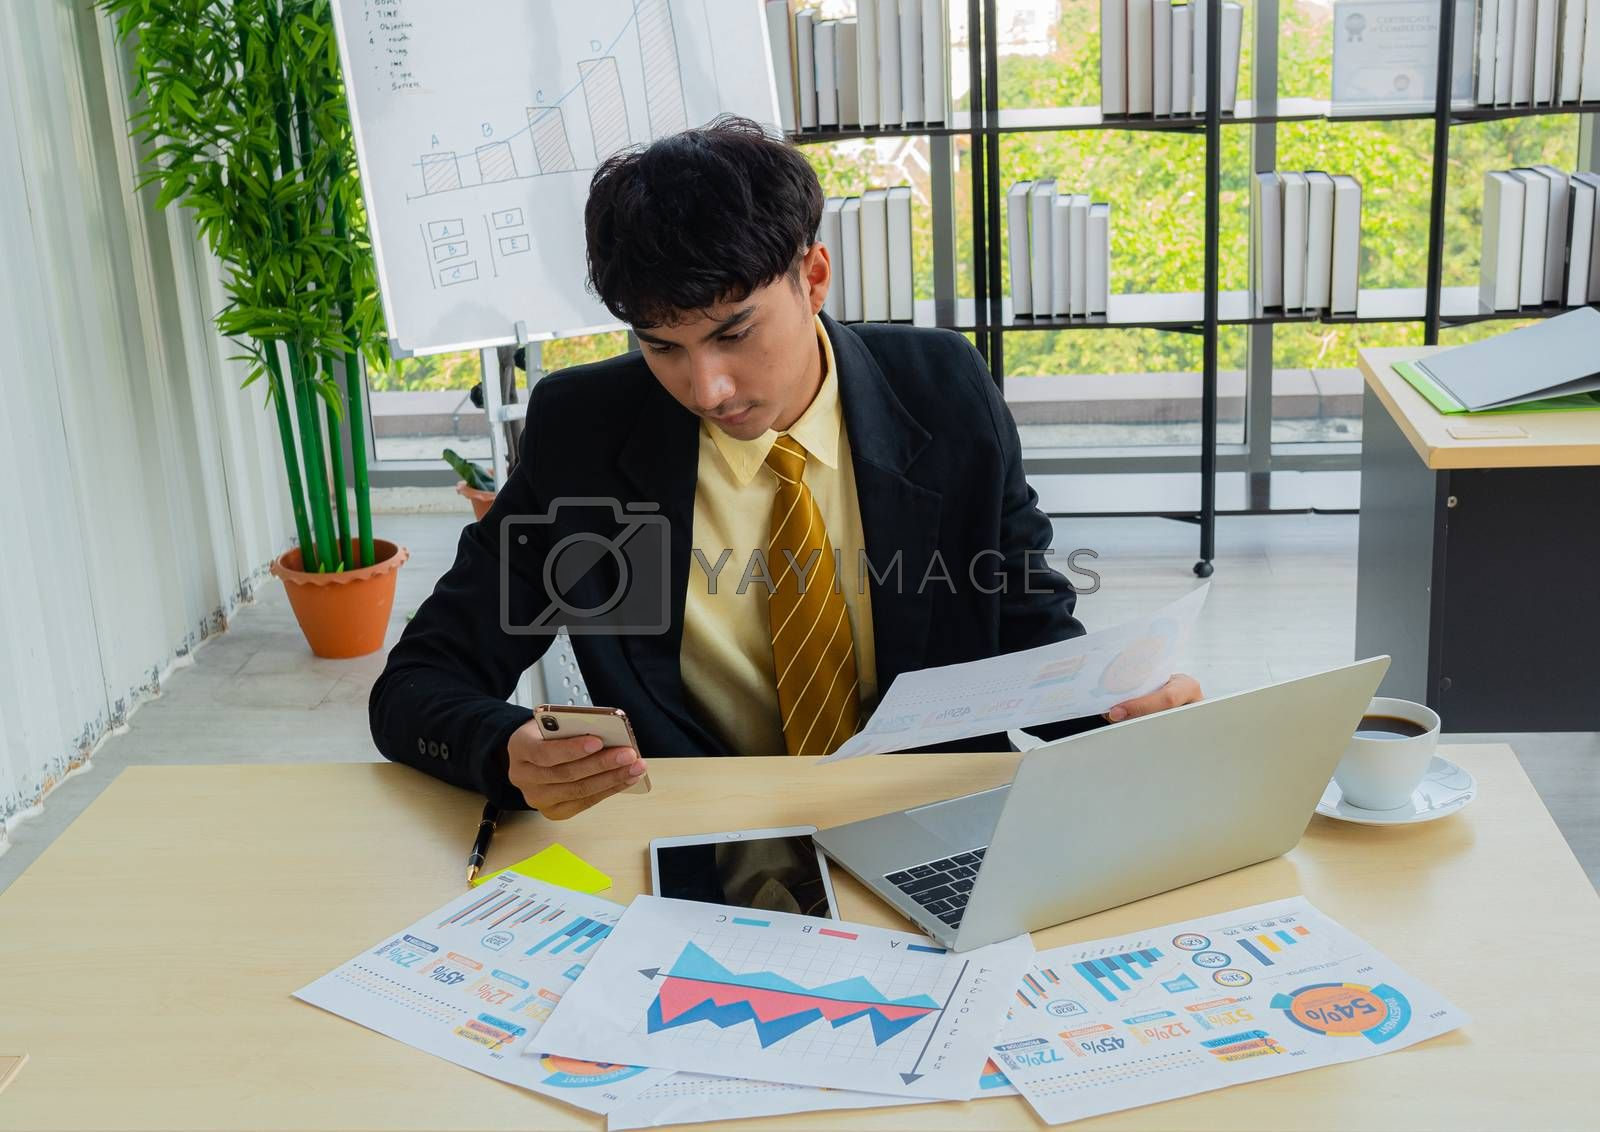 Young business people are concentrating on their work by comparing the results of their mobile phones with hand-held documents on the office desk full of information in the modern office.